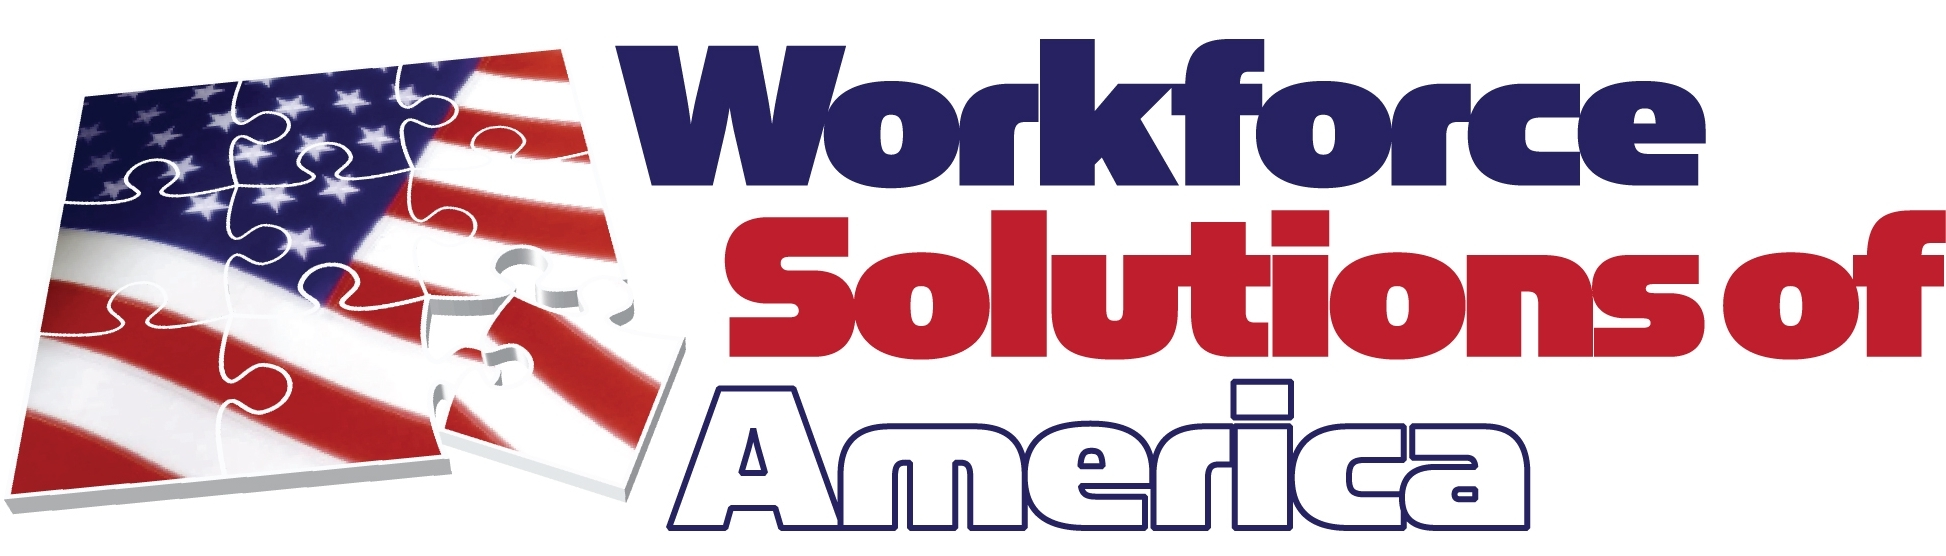 Workforce Solutions Of America Flagger Training